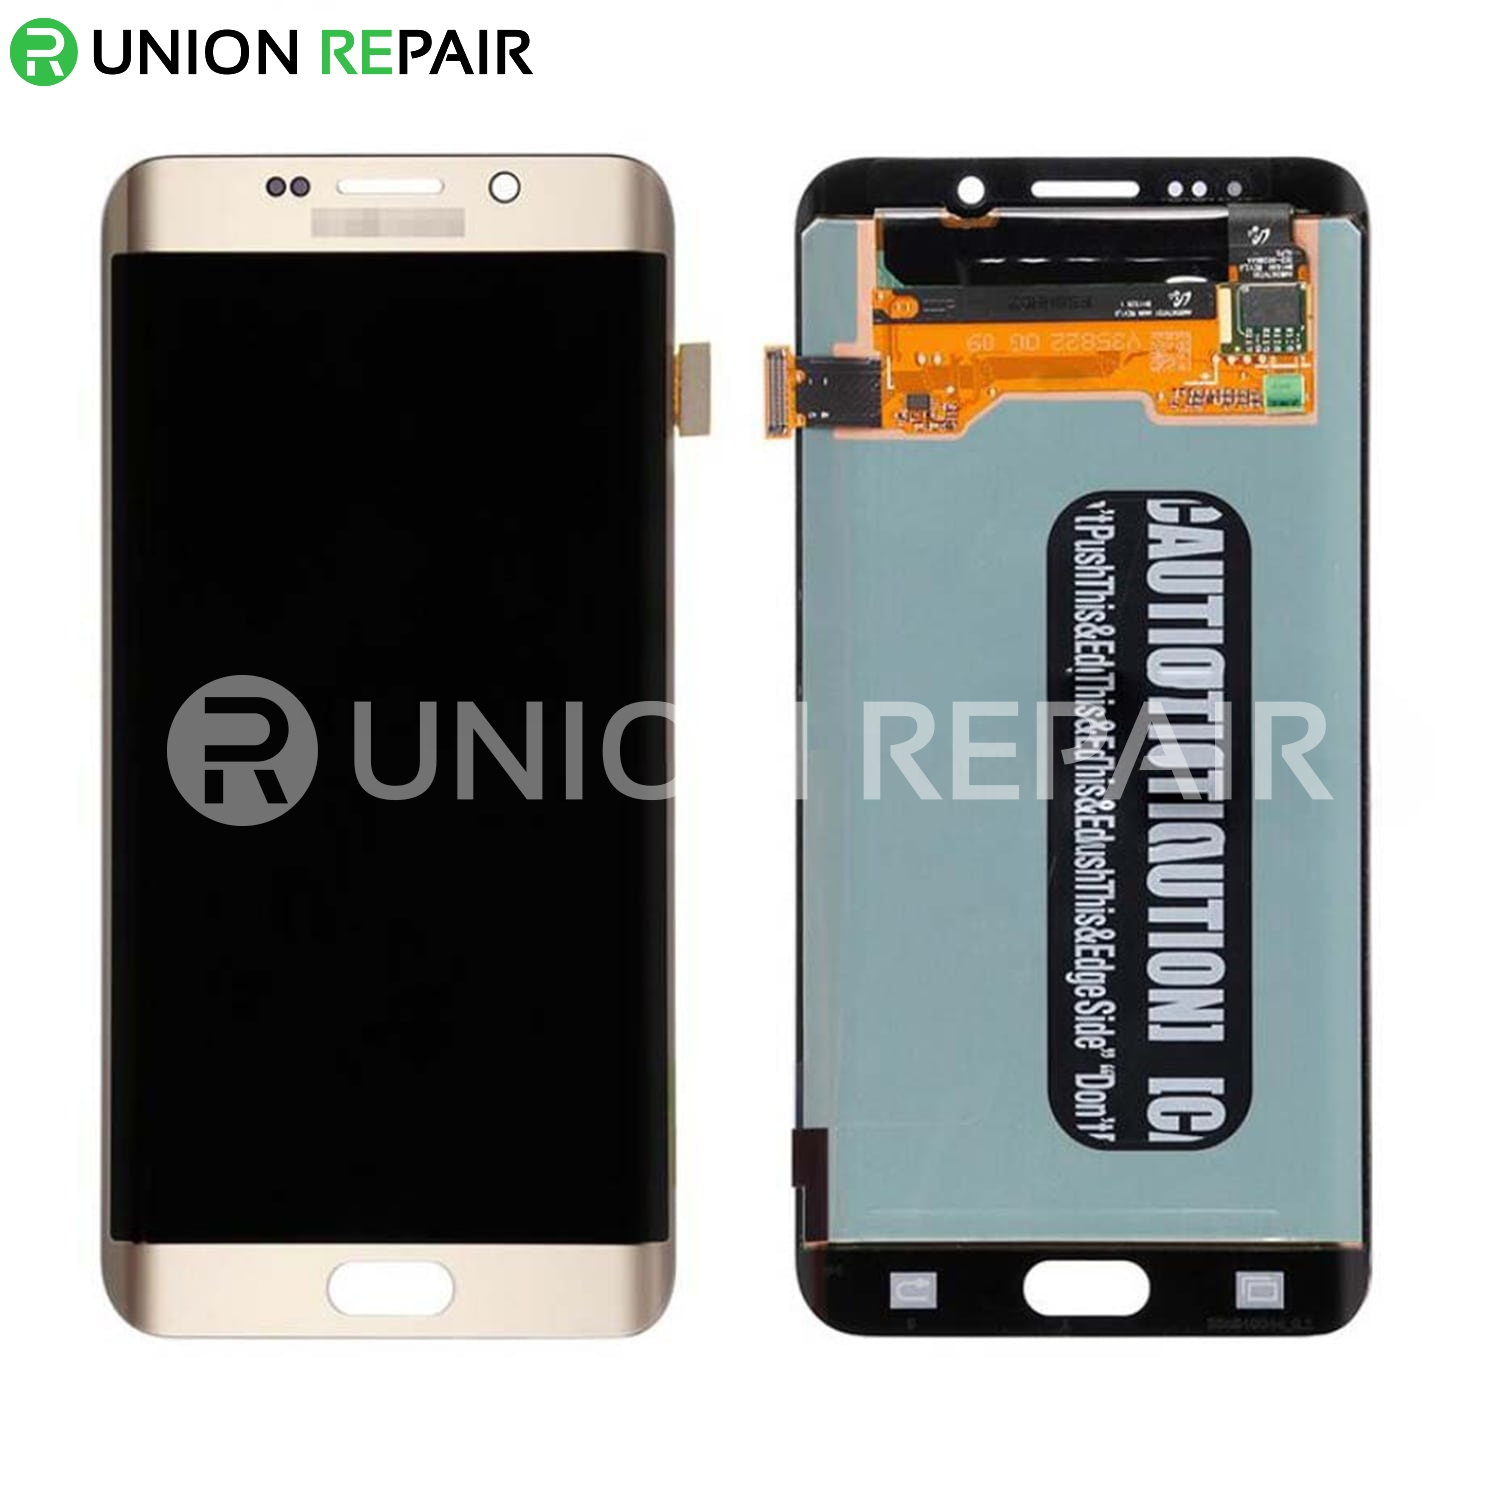 Replacement for Samsung Galaxy S6 Edge Plus SM-G928 Series LCD Screen with  Digitizer Assembly - Gold